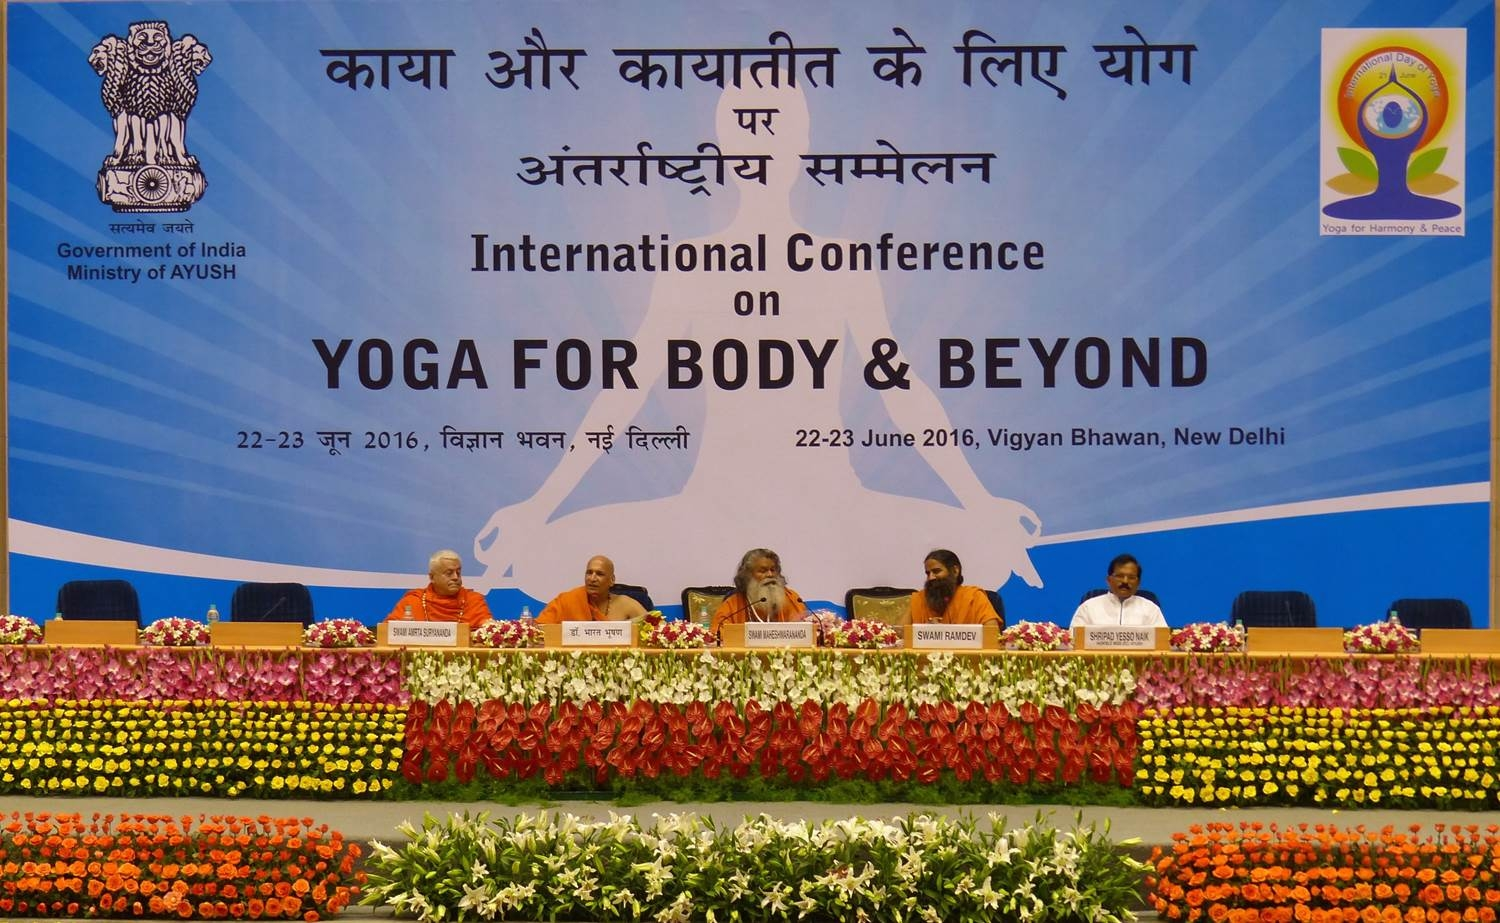 International Day of Yoga / IDY 2016 - International Conference - New Dillí, Índia - 2016, Juin 22 et 23